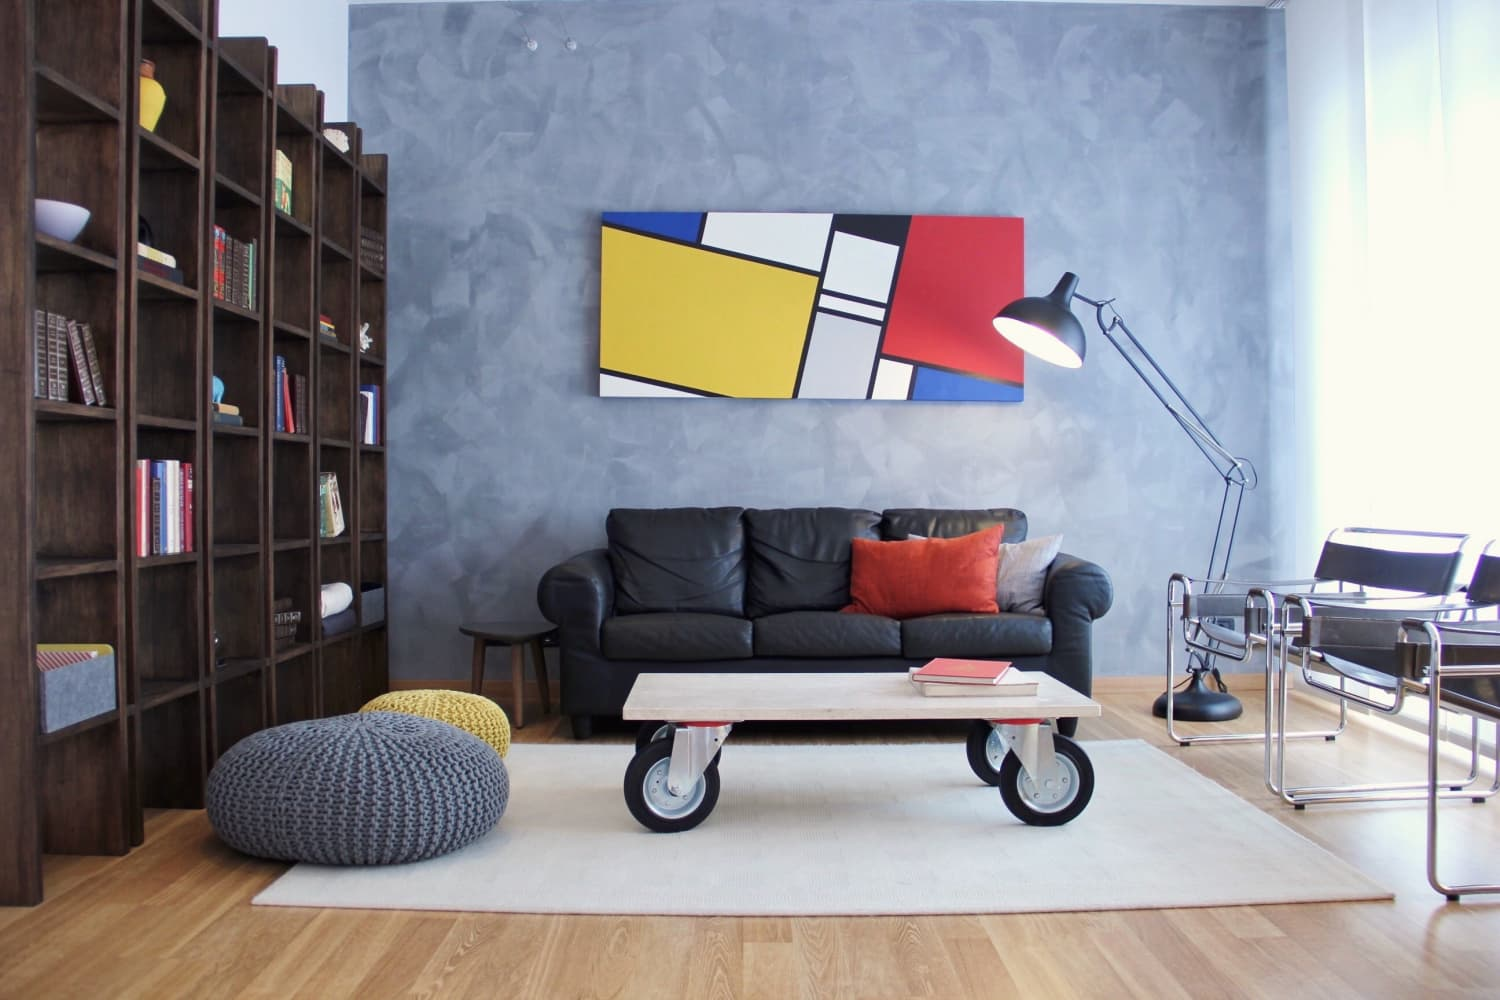 A Colorfully Modern Whimsical Home in Rome